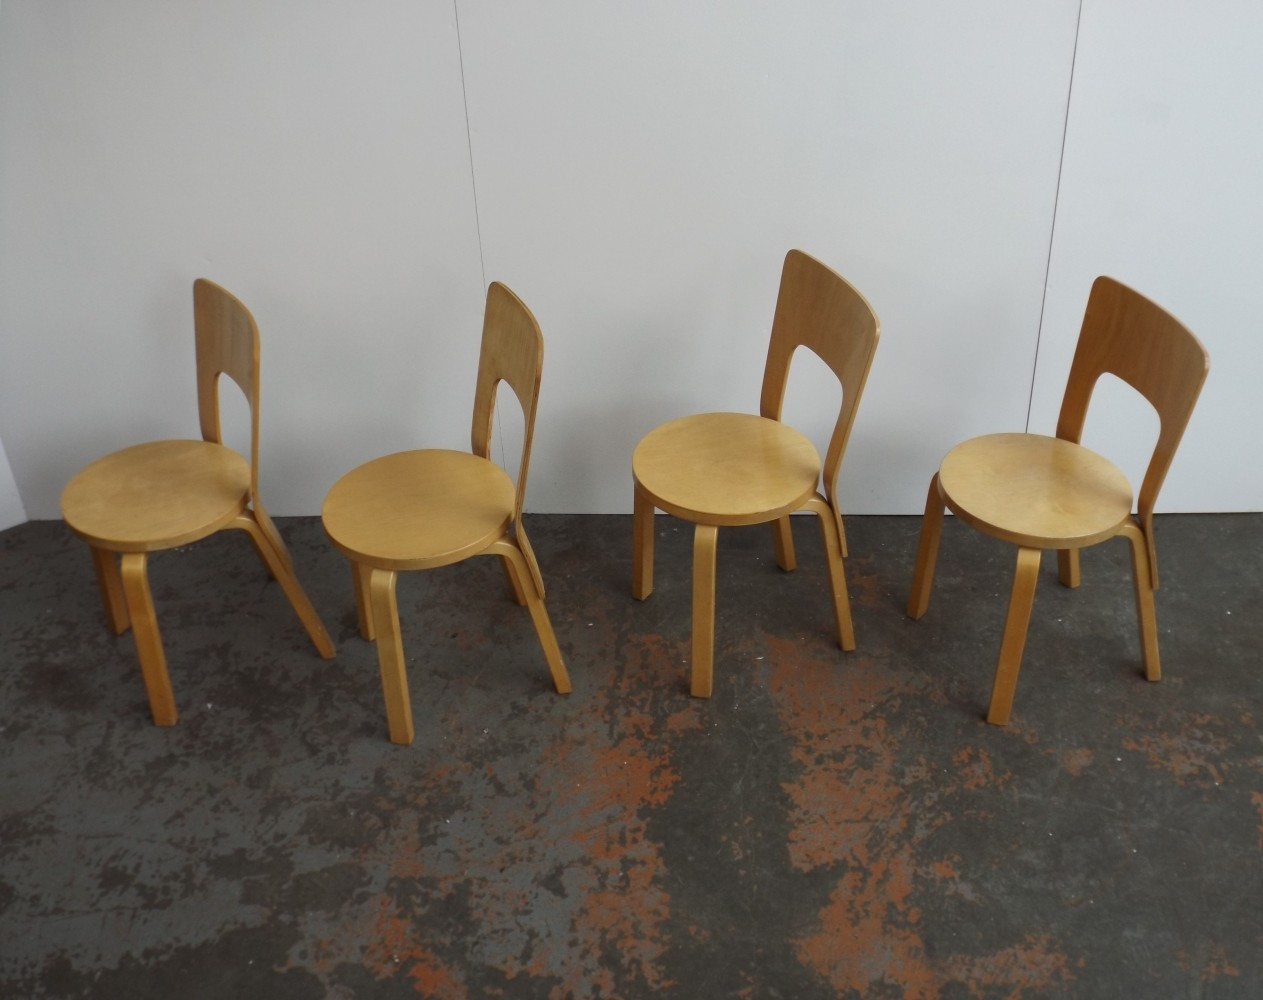 Set of 4 Model 66 dinner chairs by Alvar Aalto for Artek, 1980s